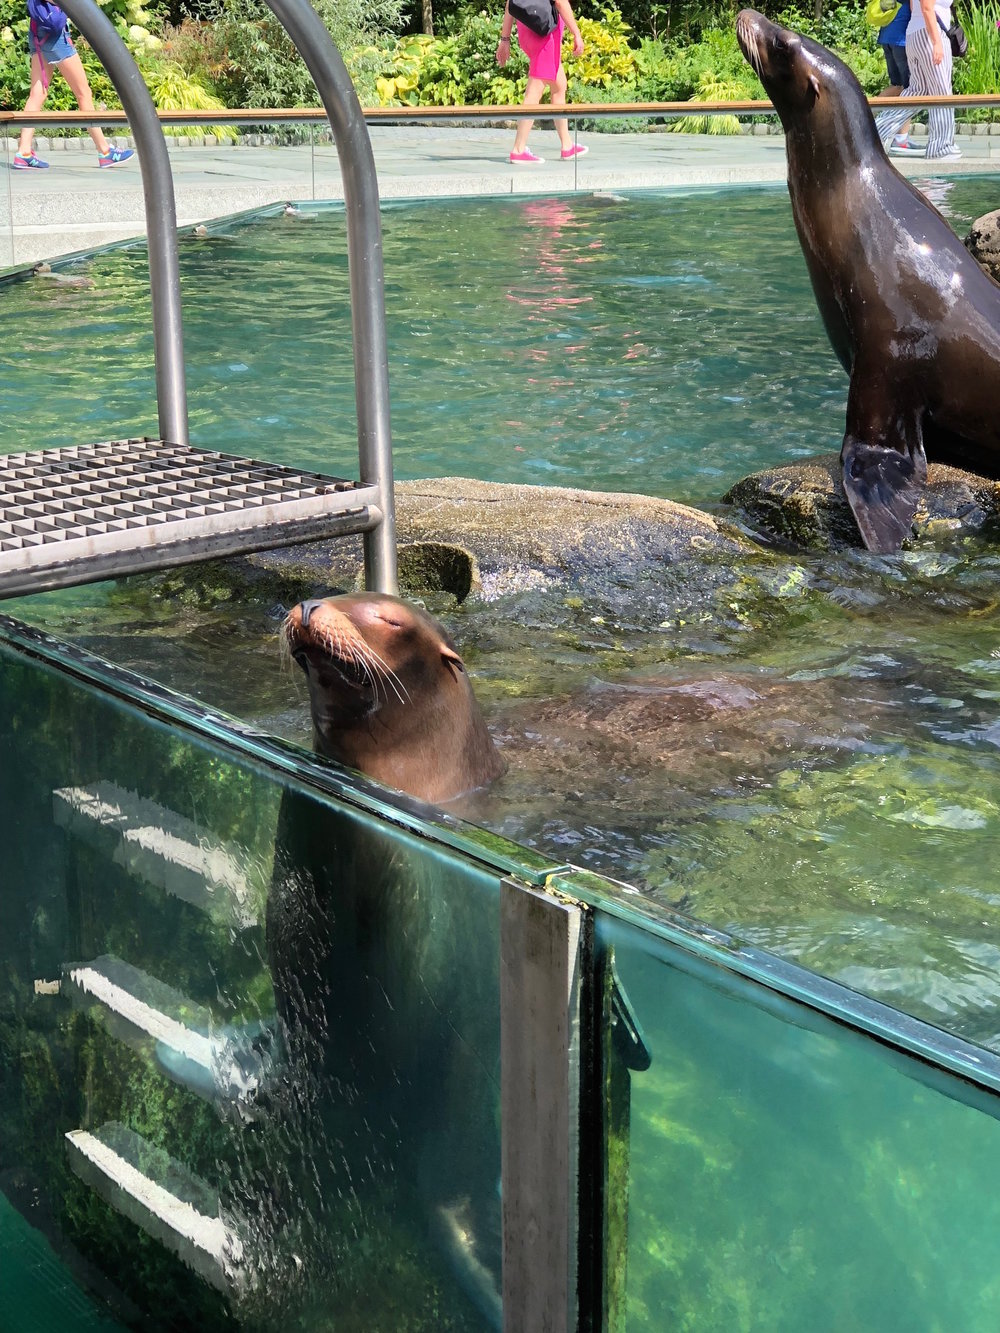 Two female California Sea Lions at the Central Park Zoo.